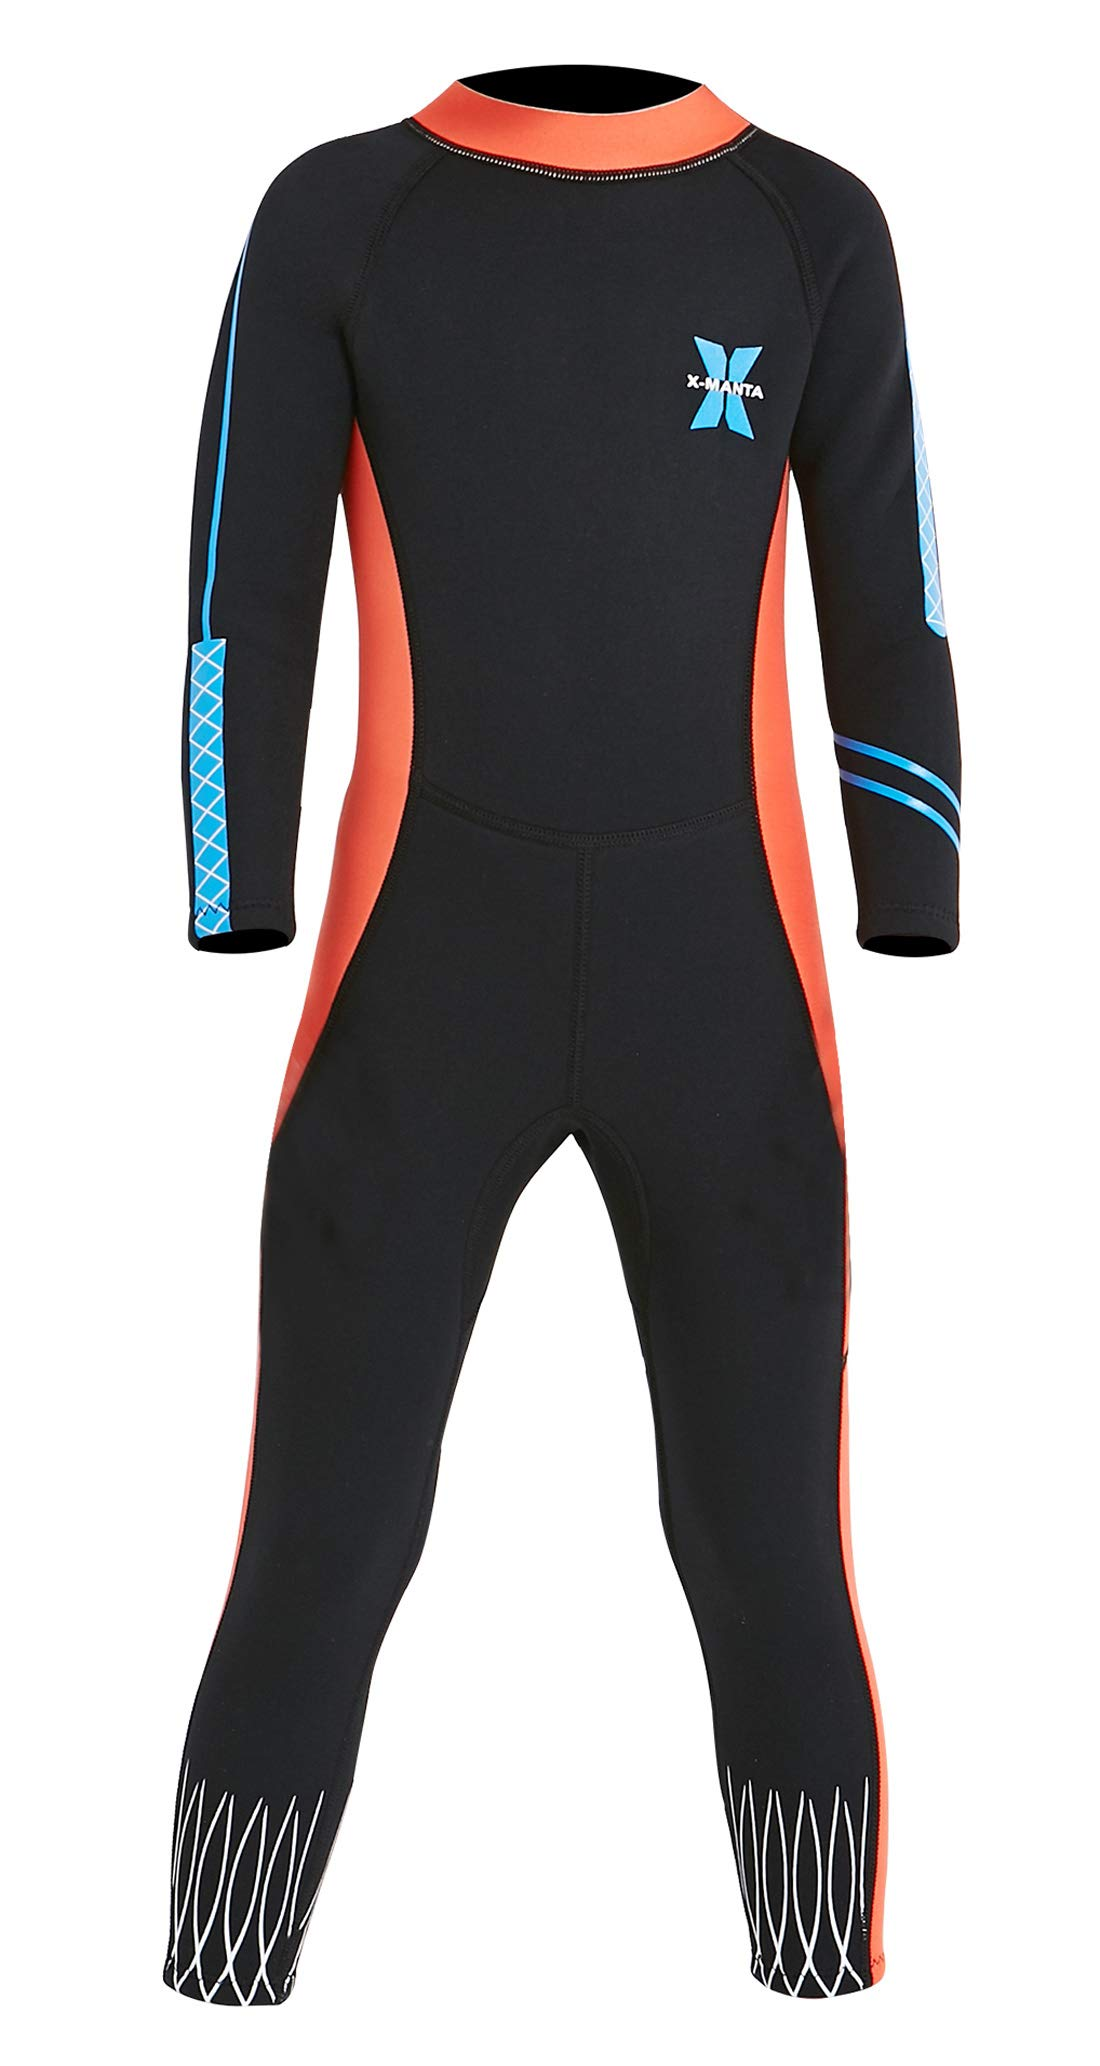 DIVE & SAIL Girls 2.5mm Diving Wetsuit Warm Long Sleeve UV Protection Full Suit Thermal Stretch Swimsuits Swimwear Black S